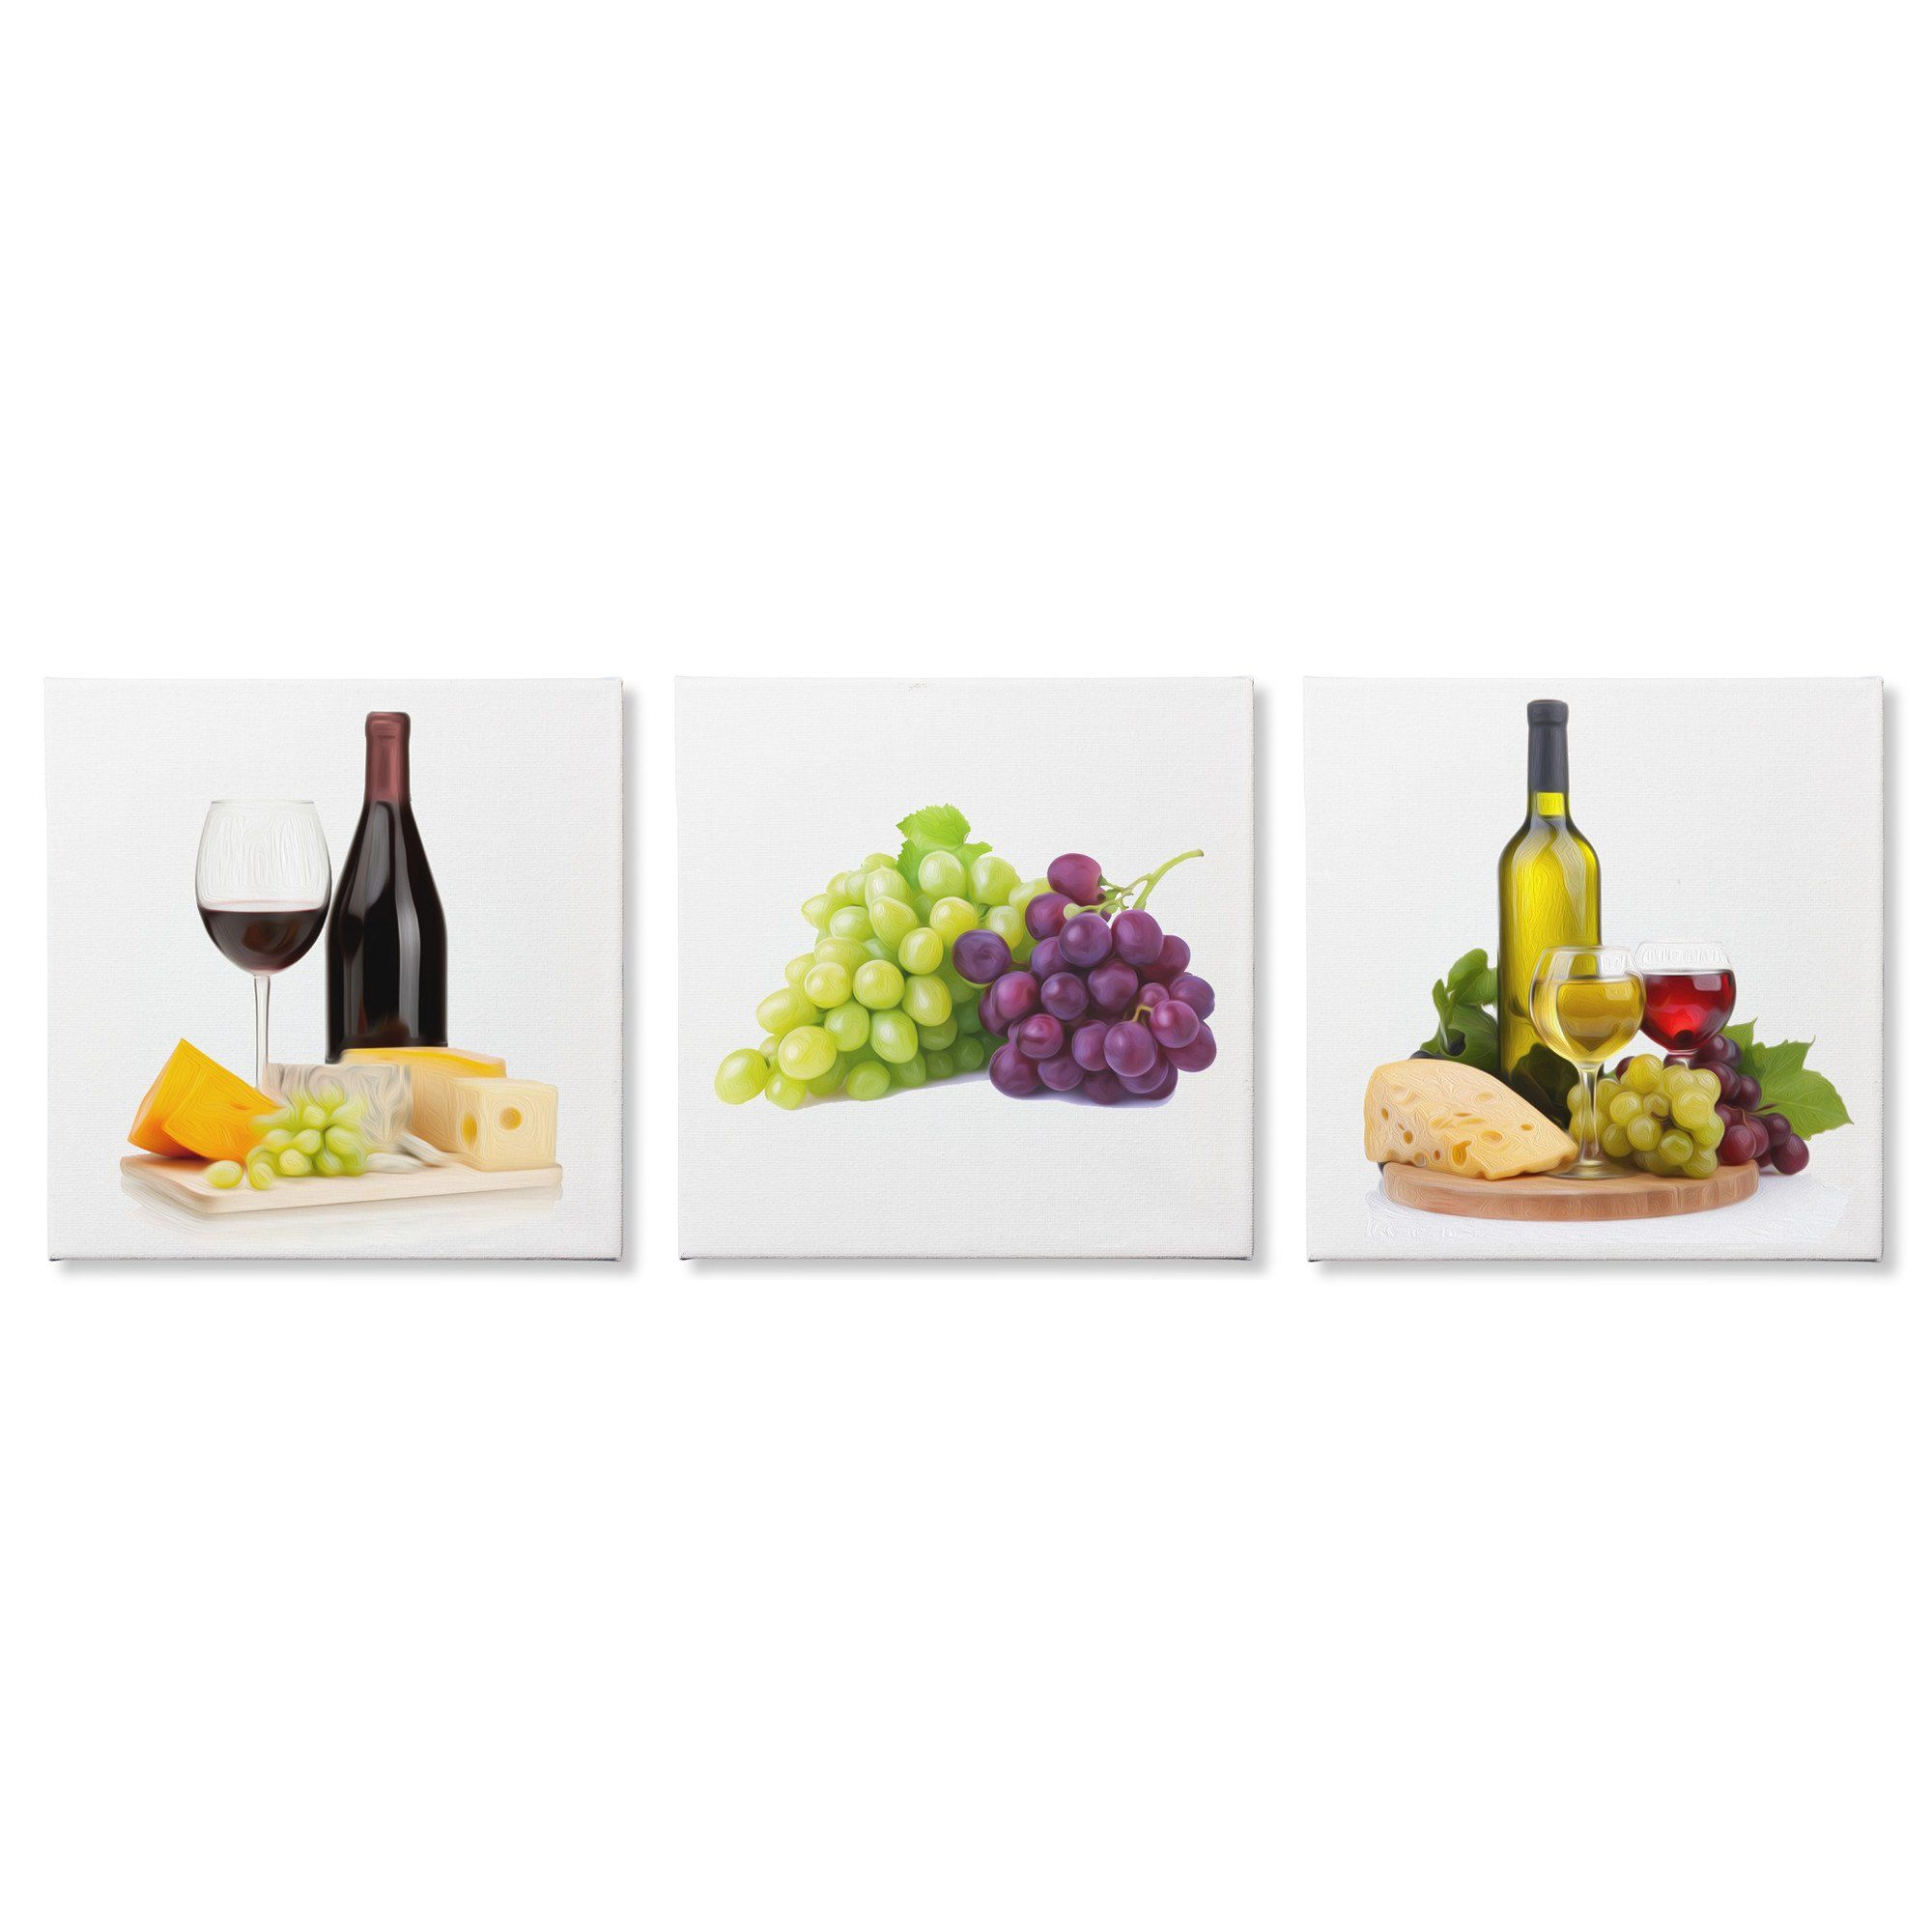 Kitchen art wine - Modern Kitchen Art Wine And Cheese Food Painting Brushstroke Gicl E Print On Canvas